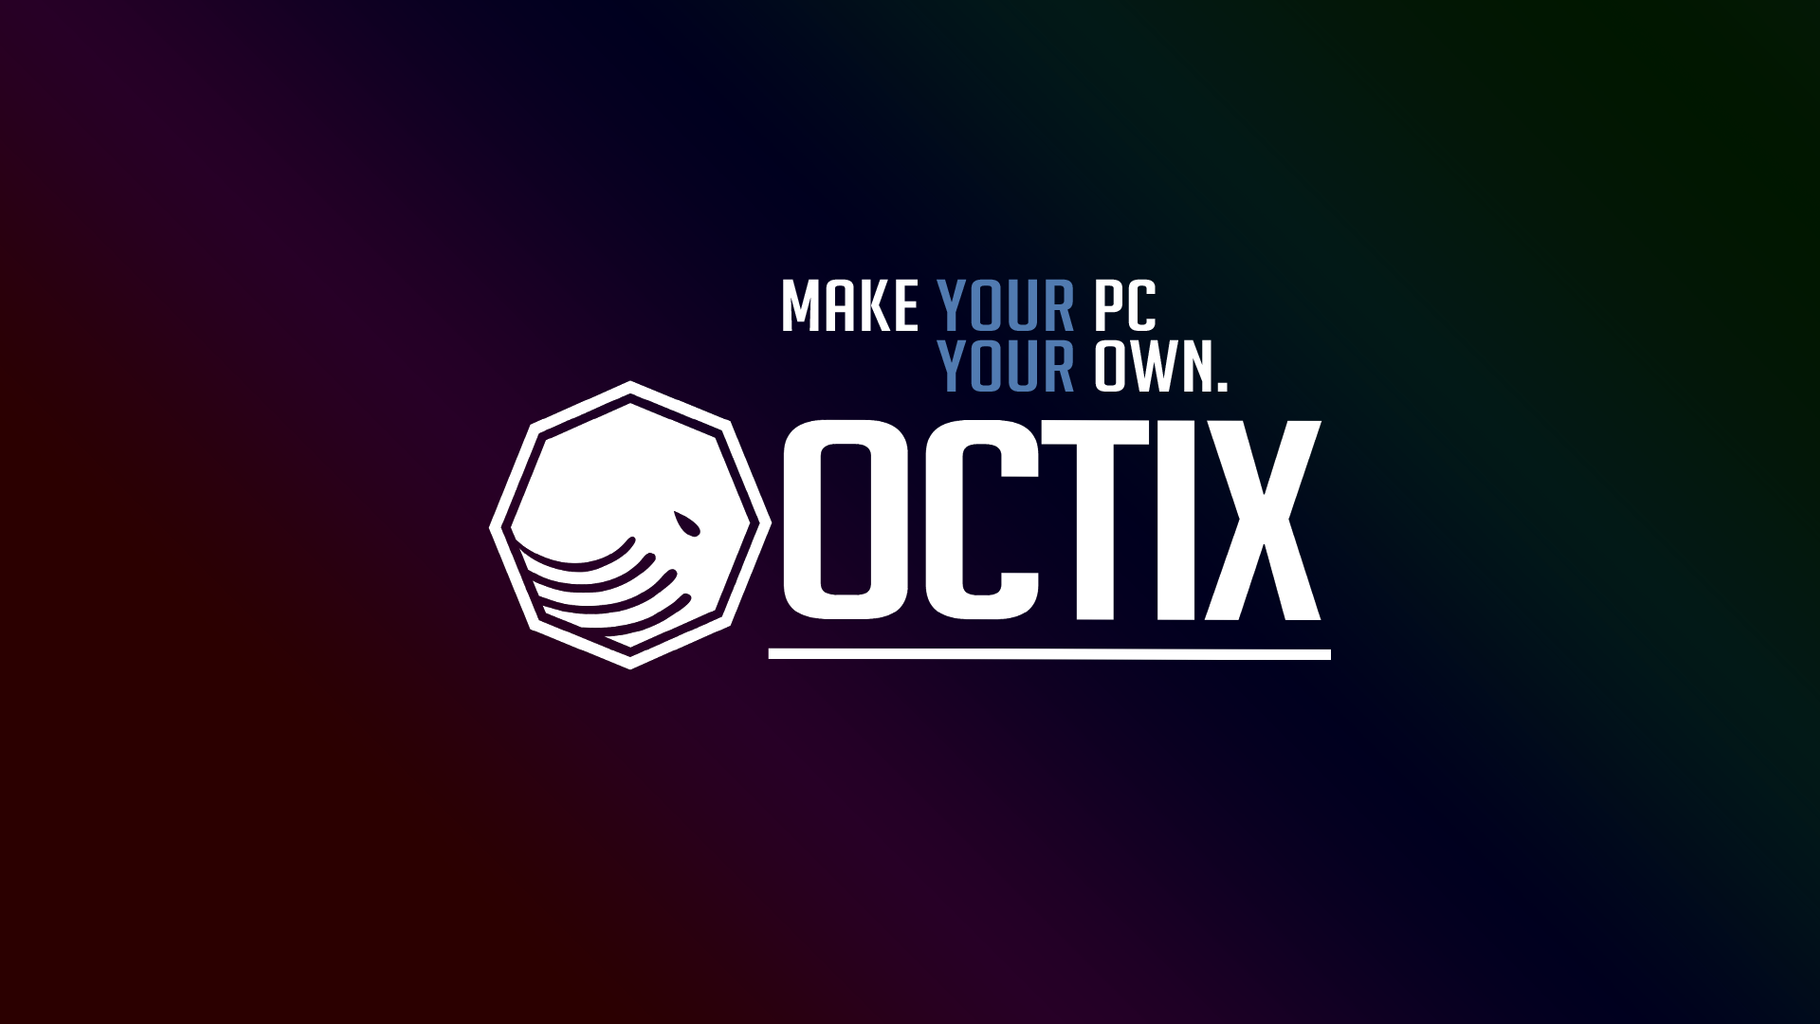 Octix Make your PC your Own